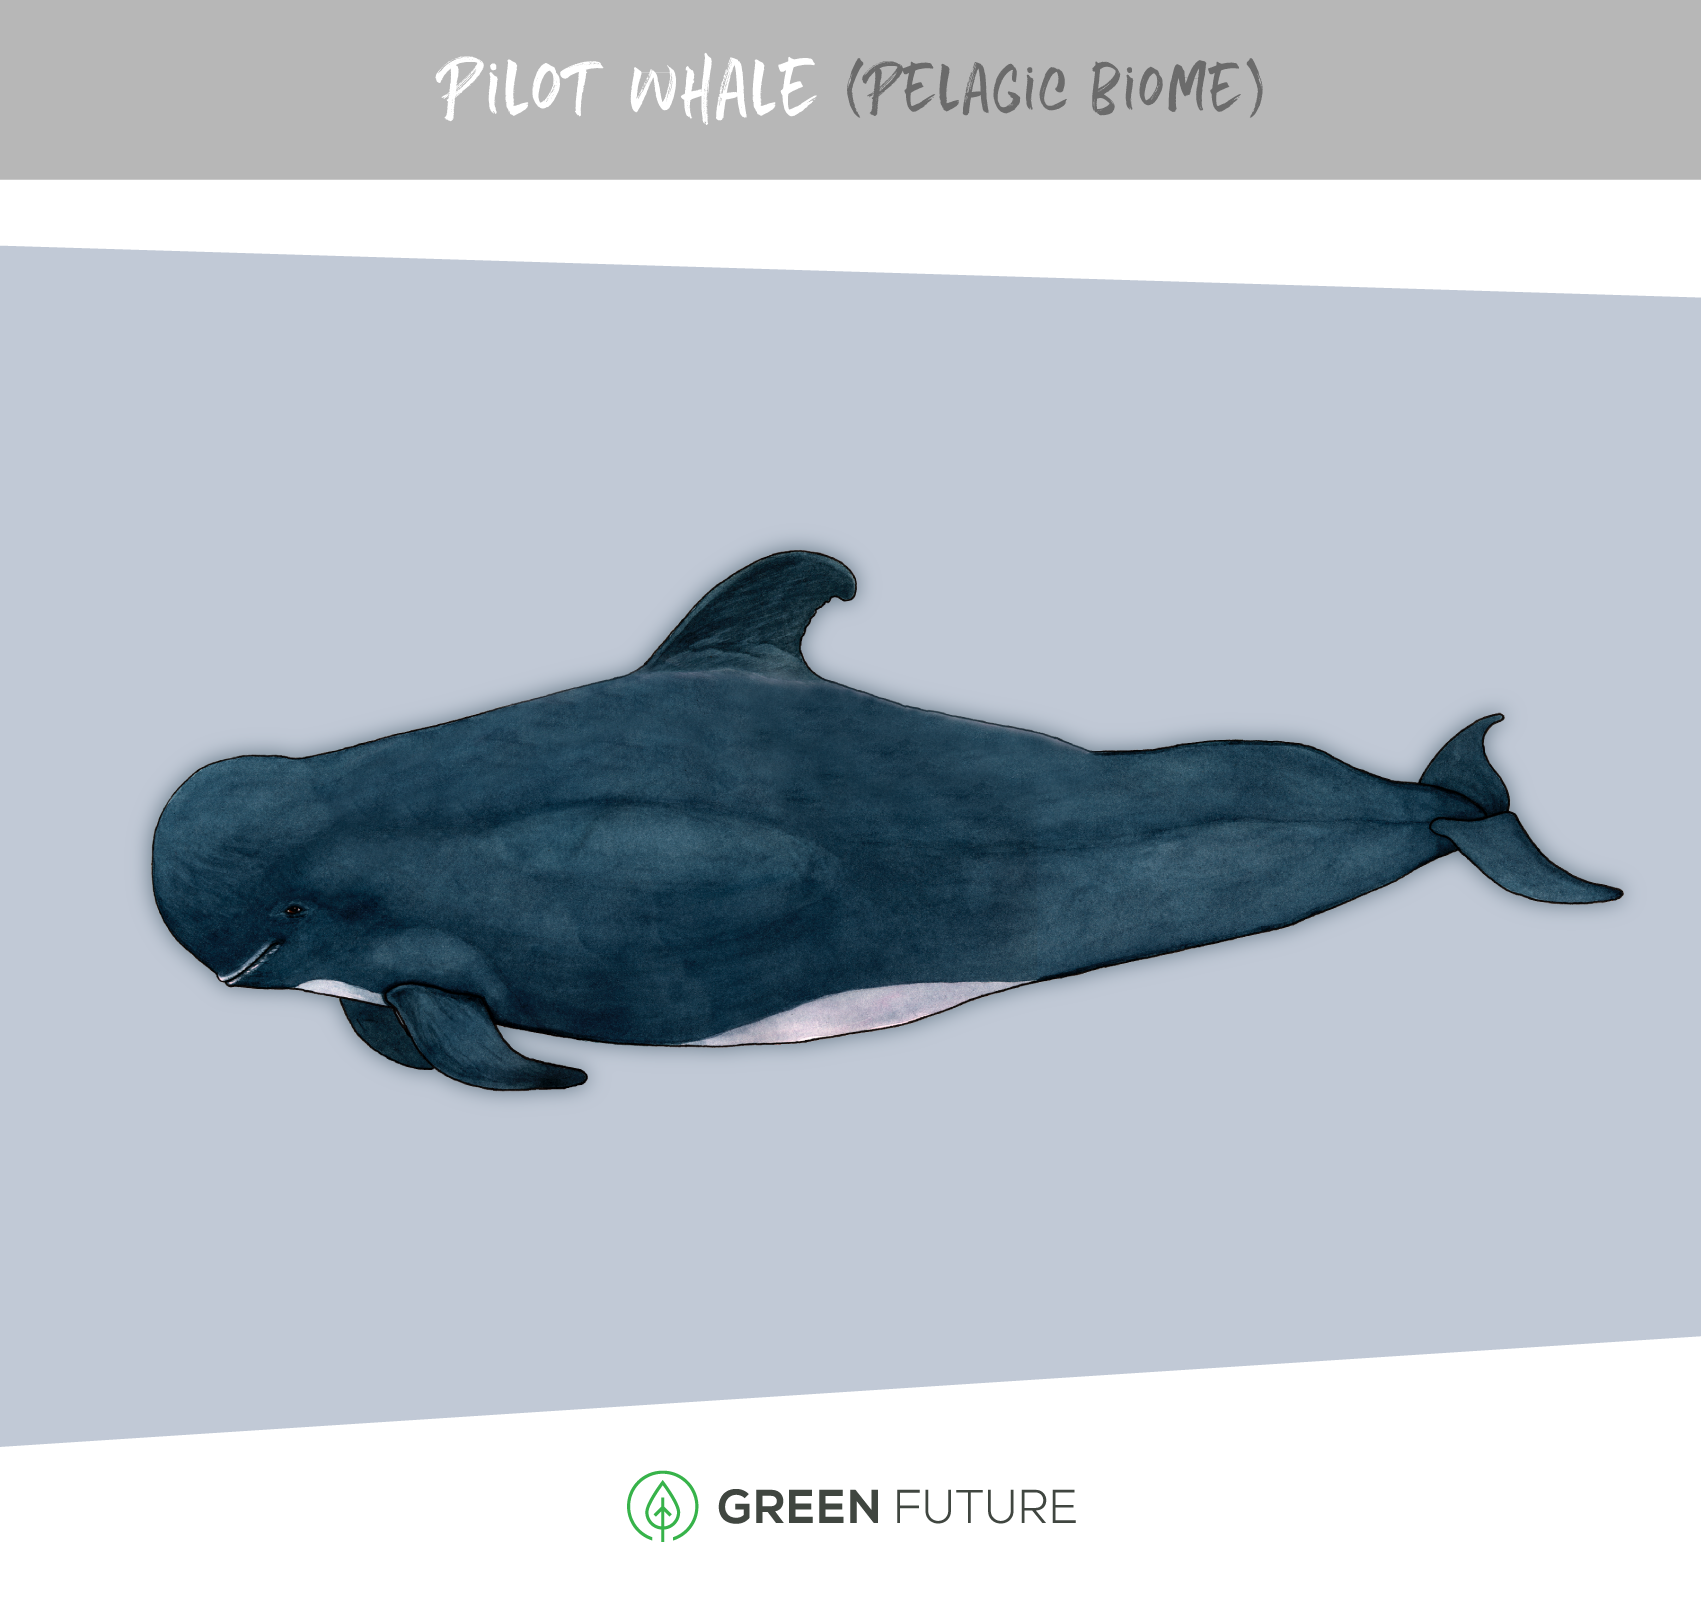 pilot whale illustration watercolor